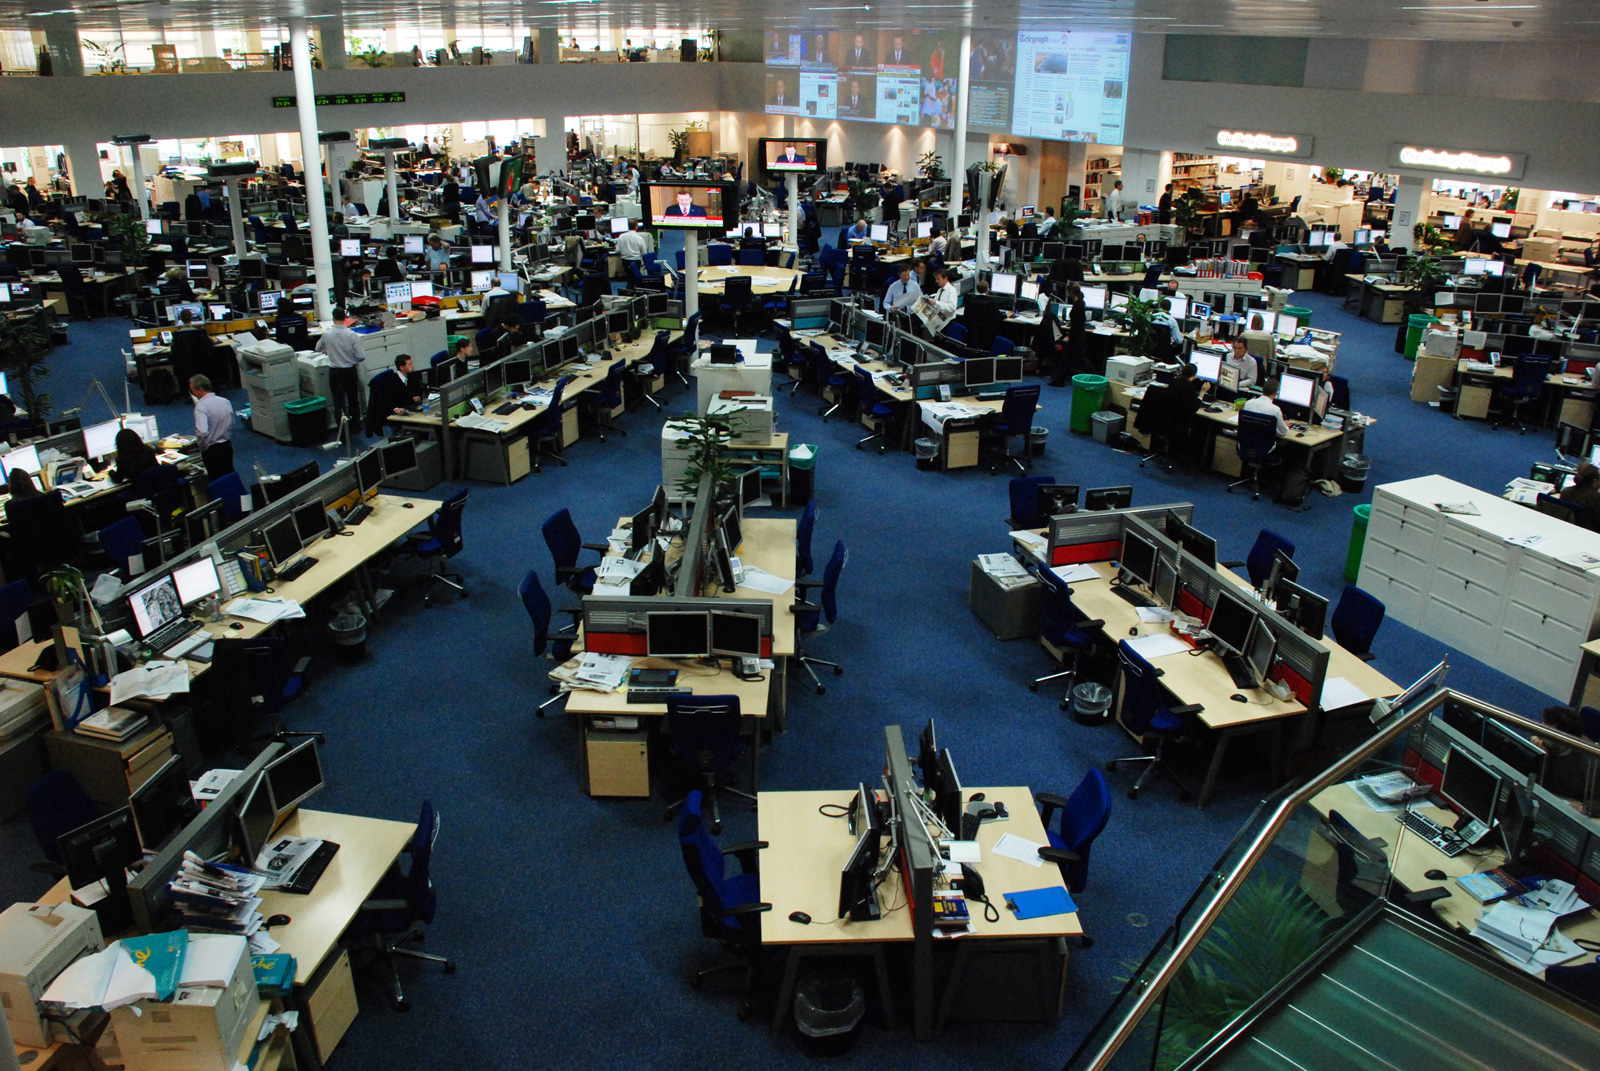 The Daily Telegraph Newsroom